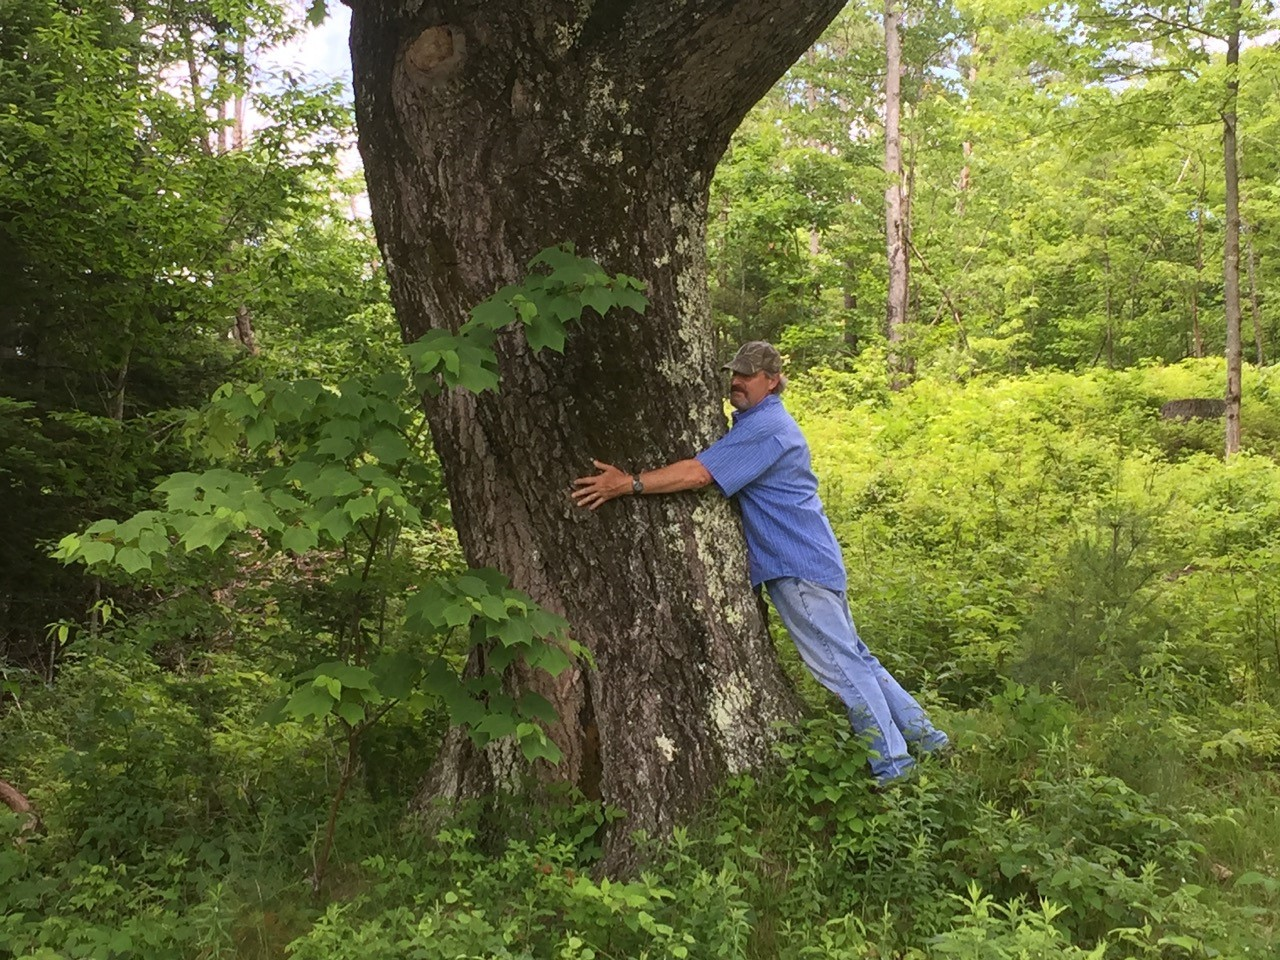 Landowner Jim Pasman wraps his arms around the red oak tree that is his farm's namesake.